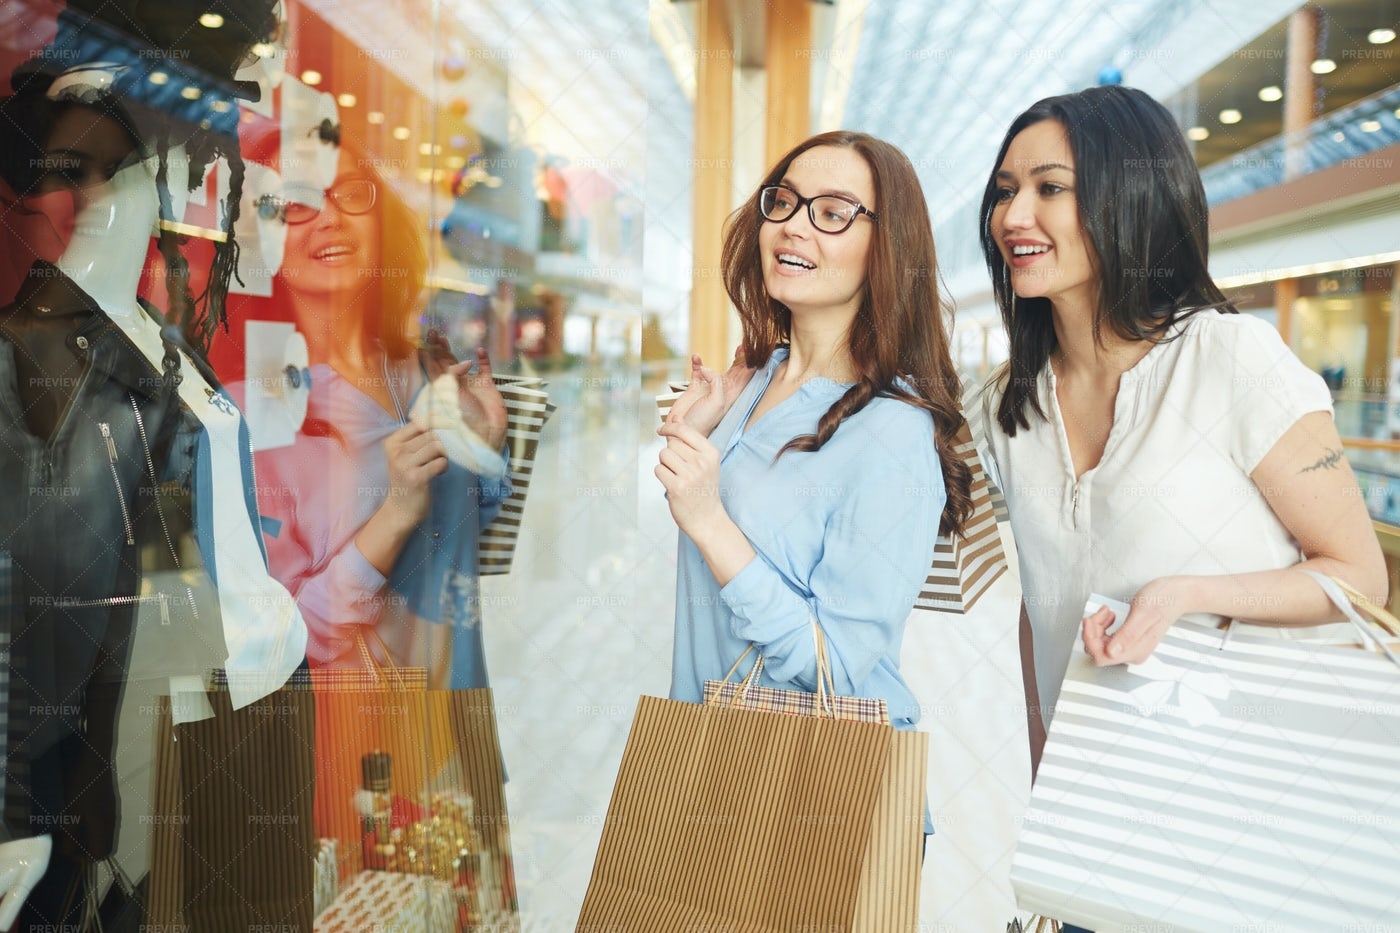 Girls By Shop-display: Stock Photos